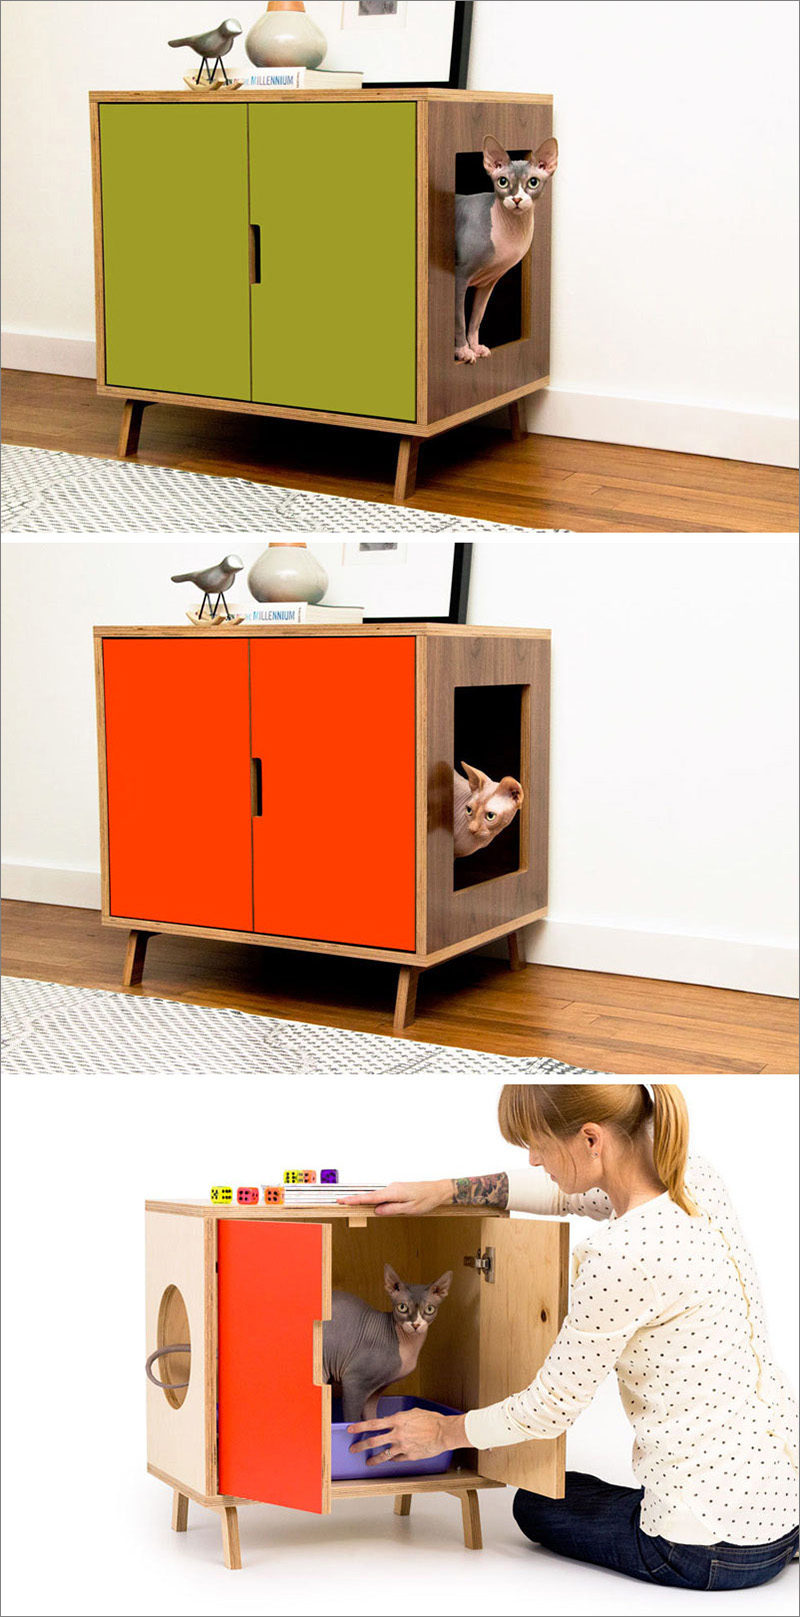 This modern cabinet hides a litter box inside, and is made from a high quality walnut wood with a water proof finish, which can be left natural or painted.